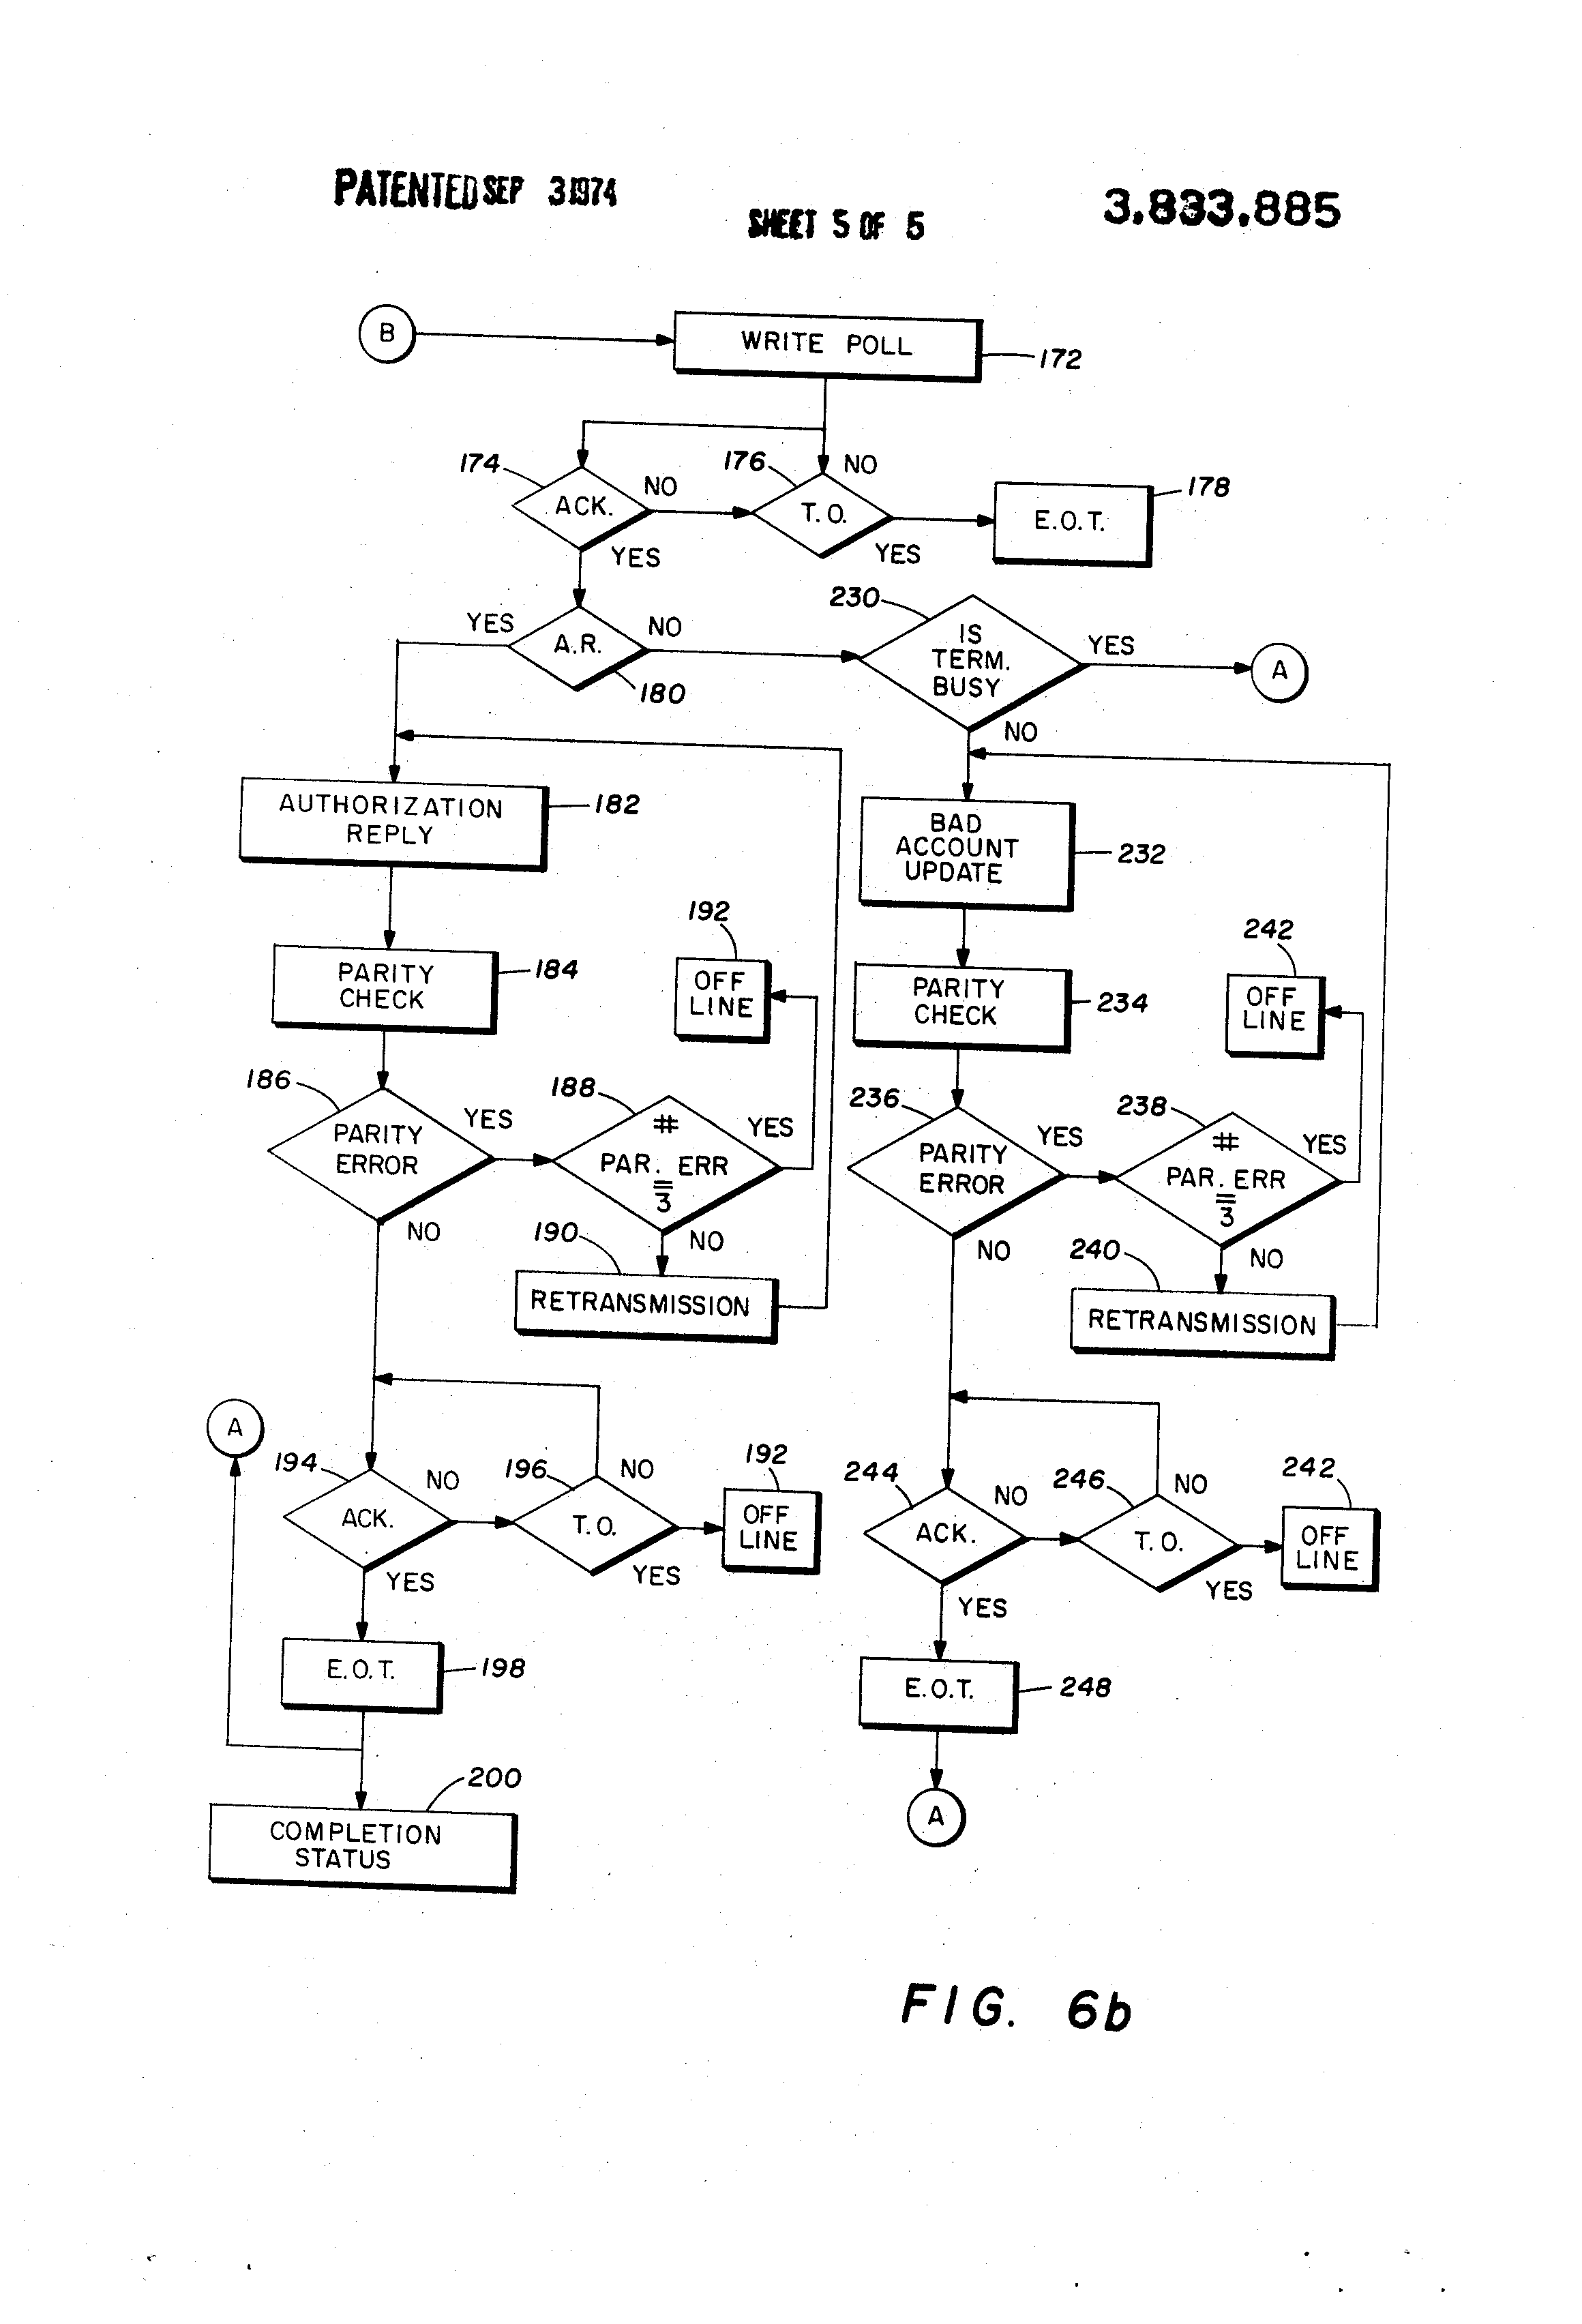 Er Diagram For Payroll System Patent Automatic Banking System Patents